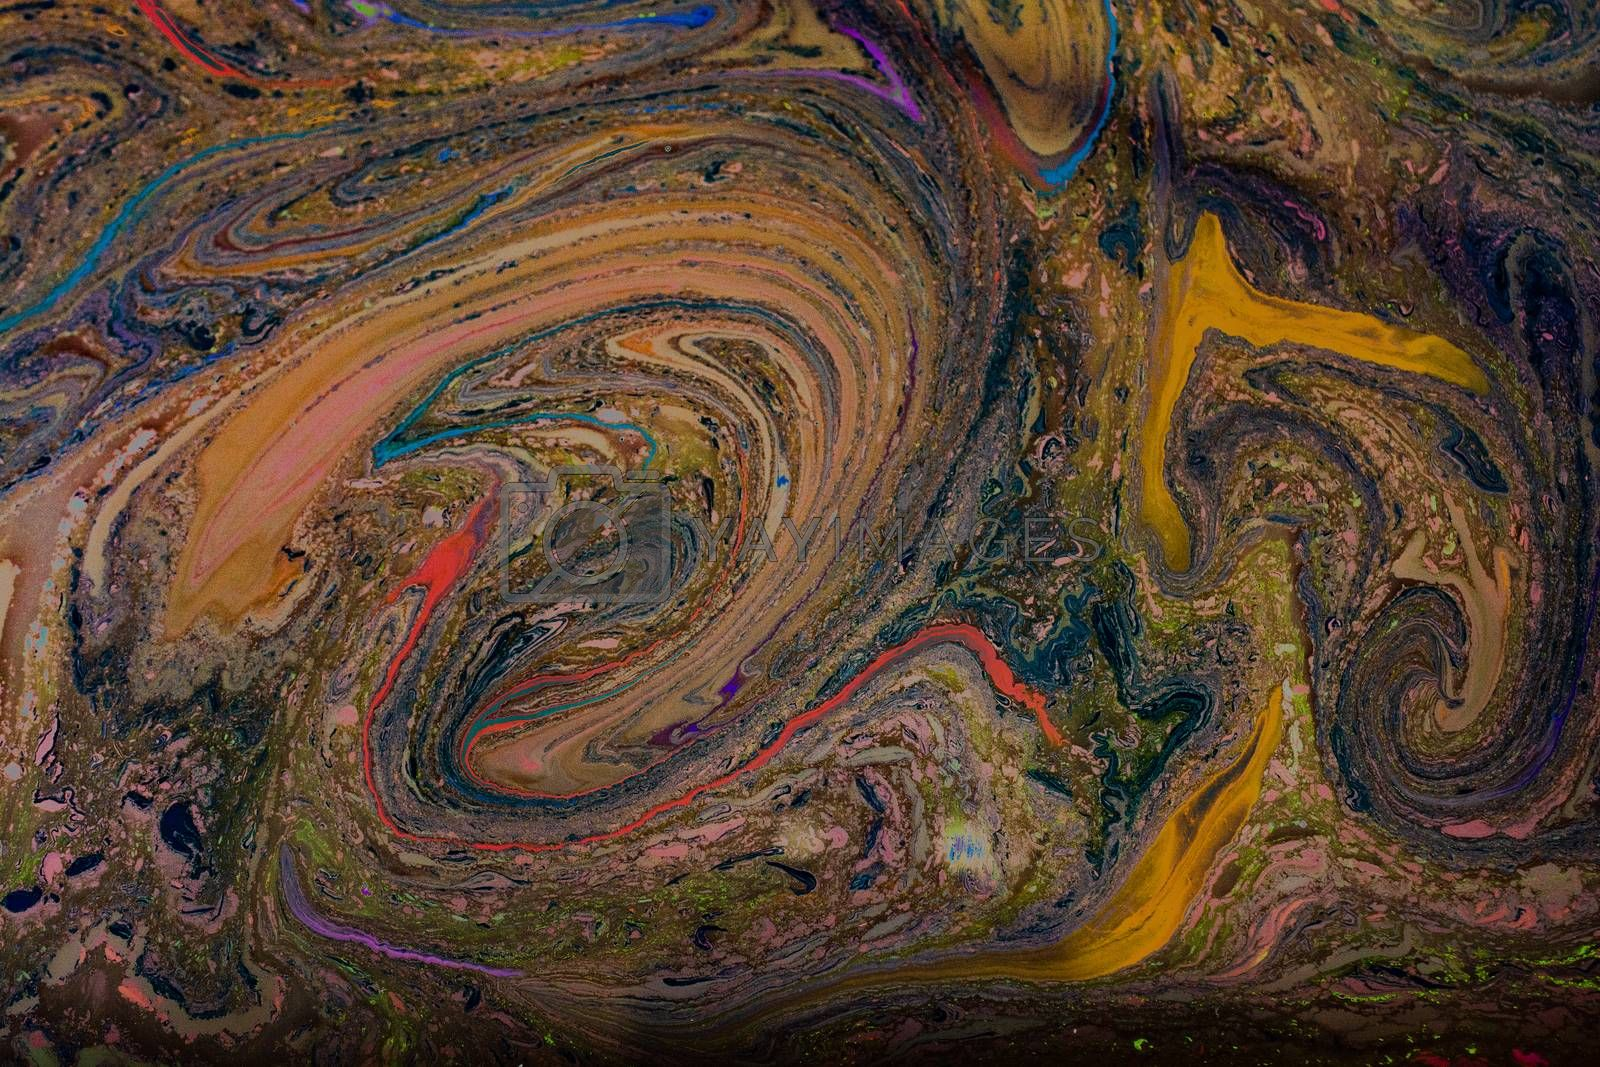 Abstract marbling art patterns as background